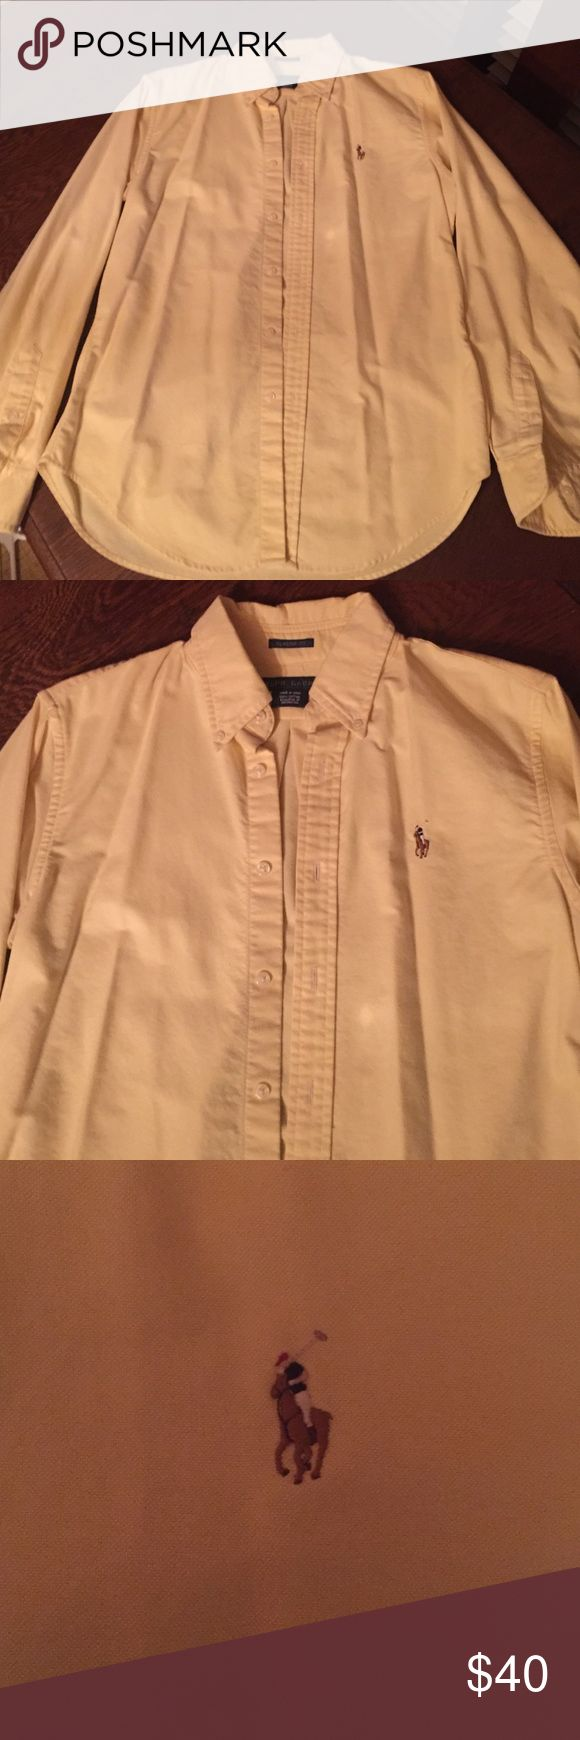 NWOT! Ralph Laurn Button Up NWOT! Want more info please feel free to comment below! Ralph Lauren Tops Button Down Shirts